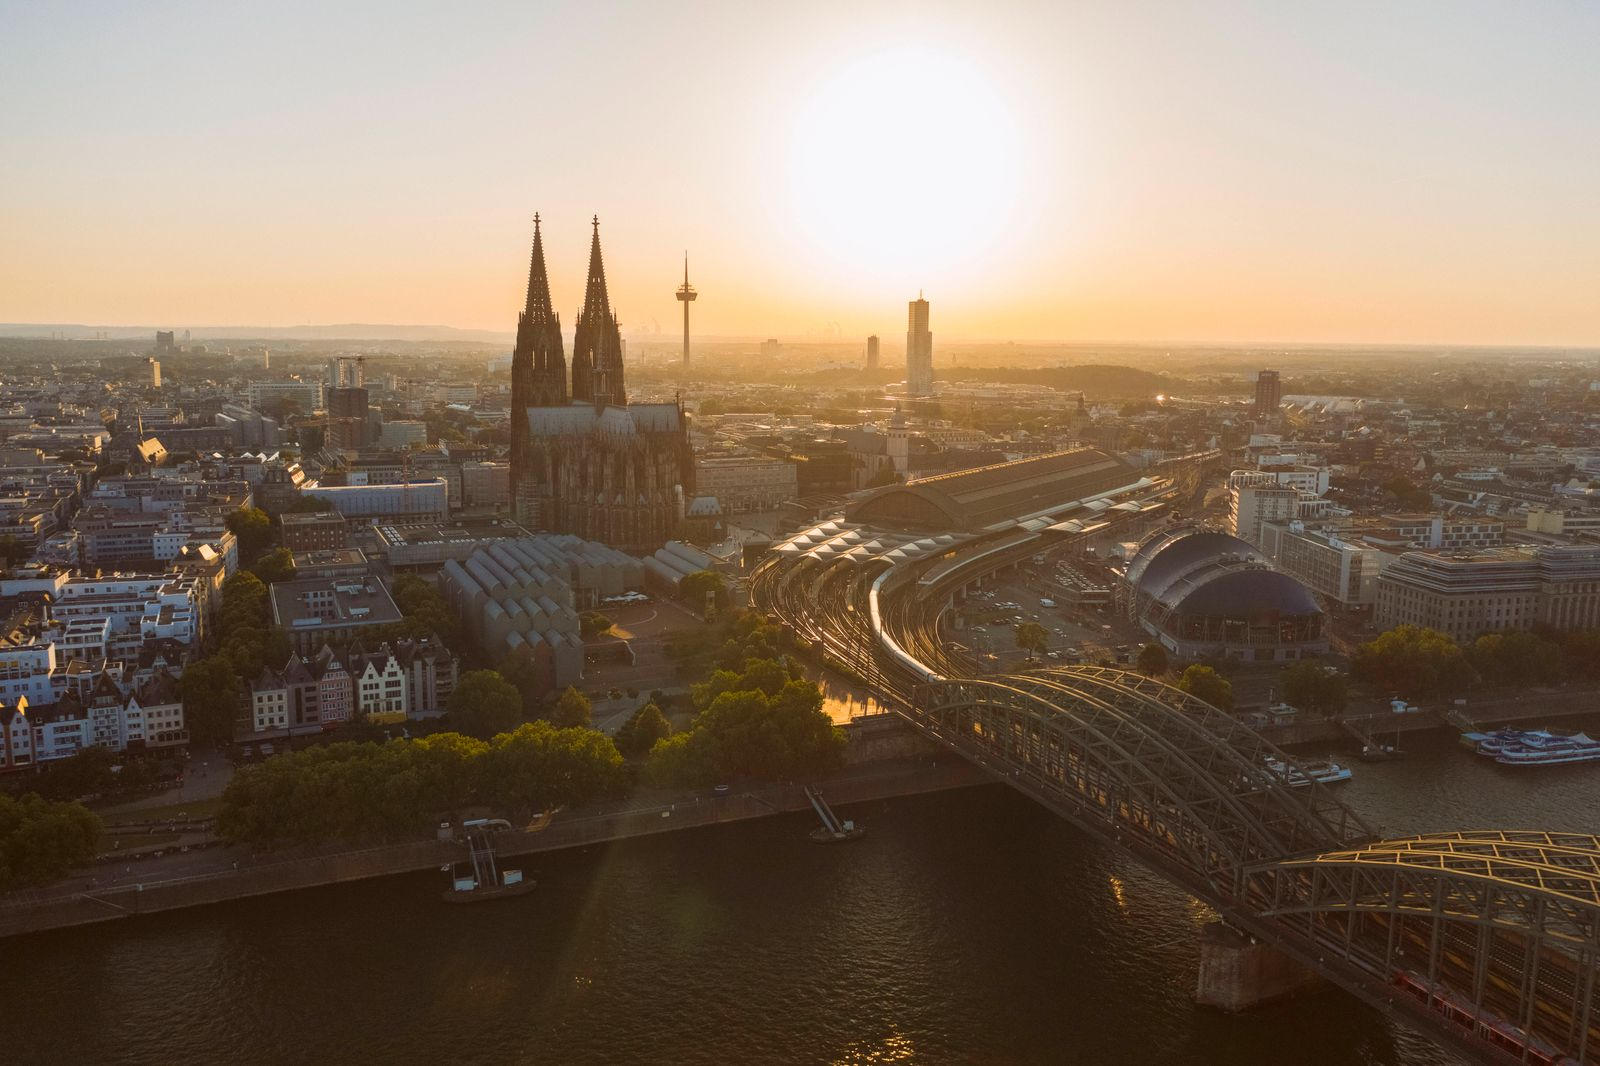 Germany, Cologne, Rhine River, View of river and city at sunset TAMF02800